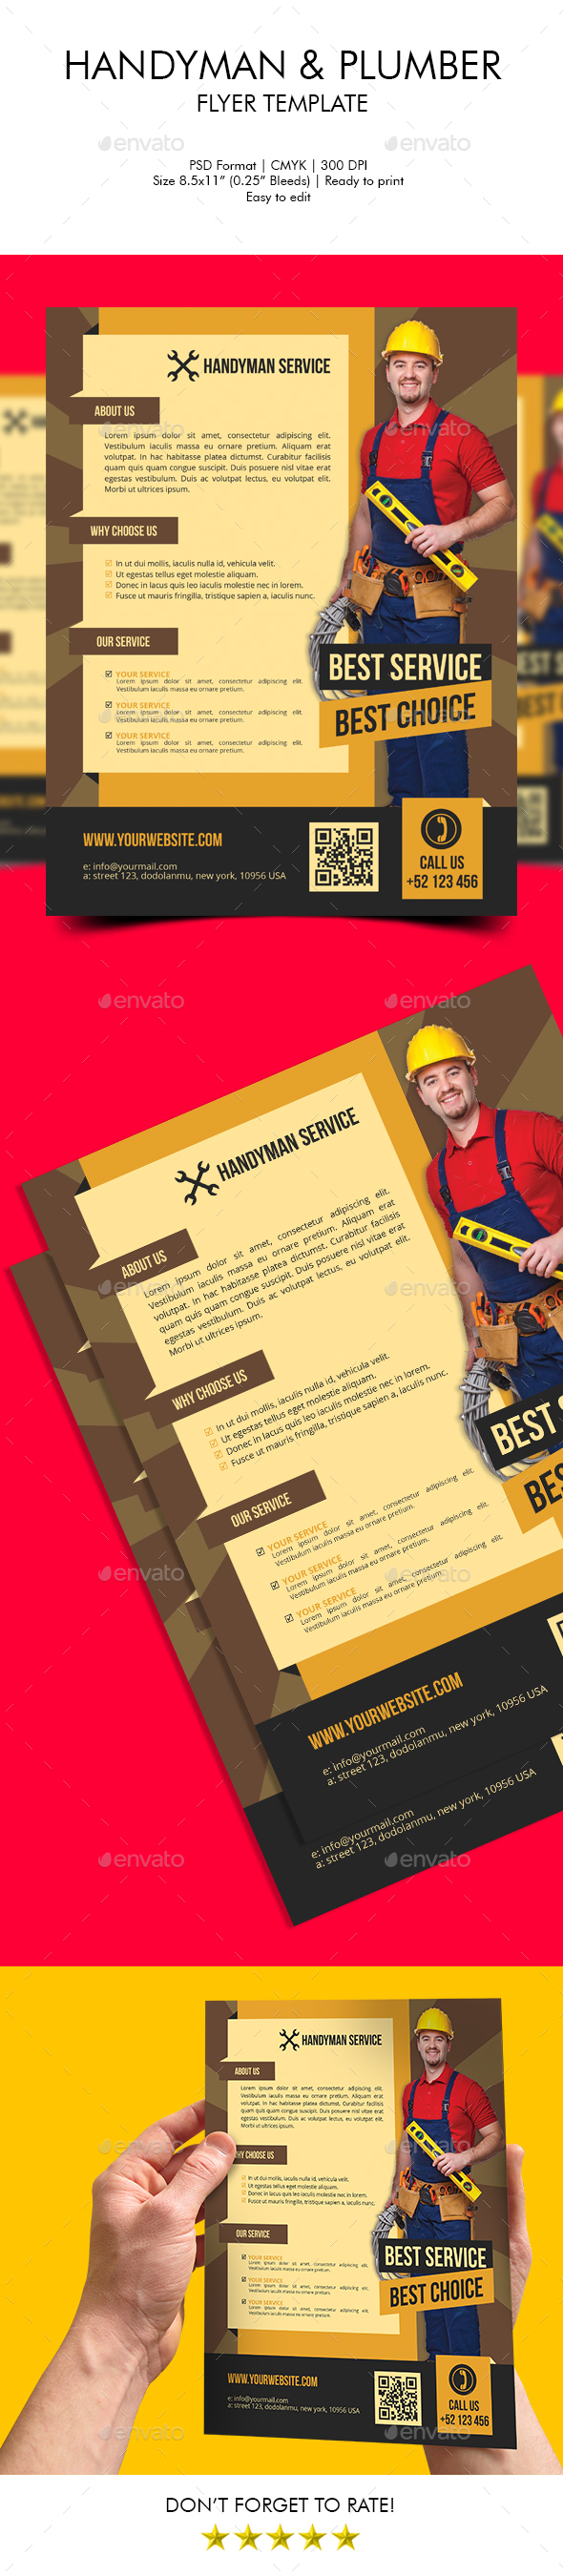 Handyman & Plumber Flyer Template - Corporate Flyers